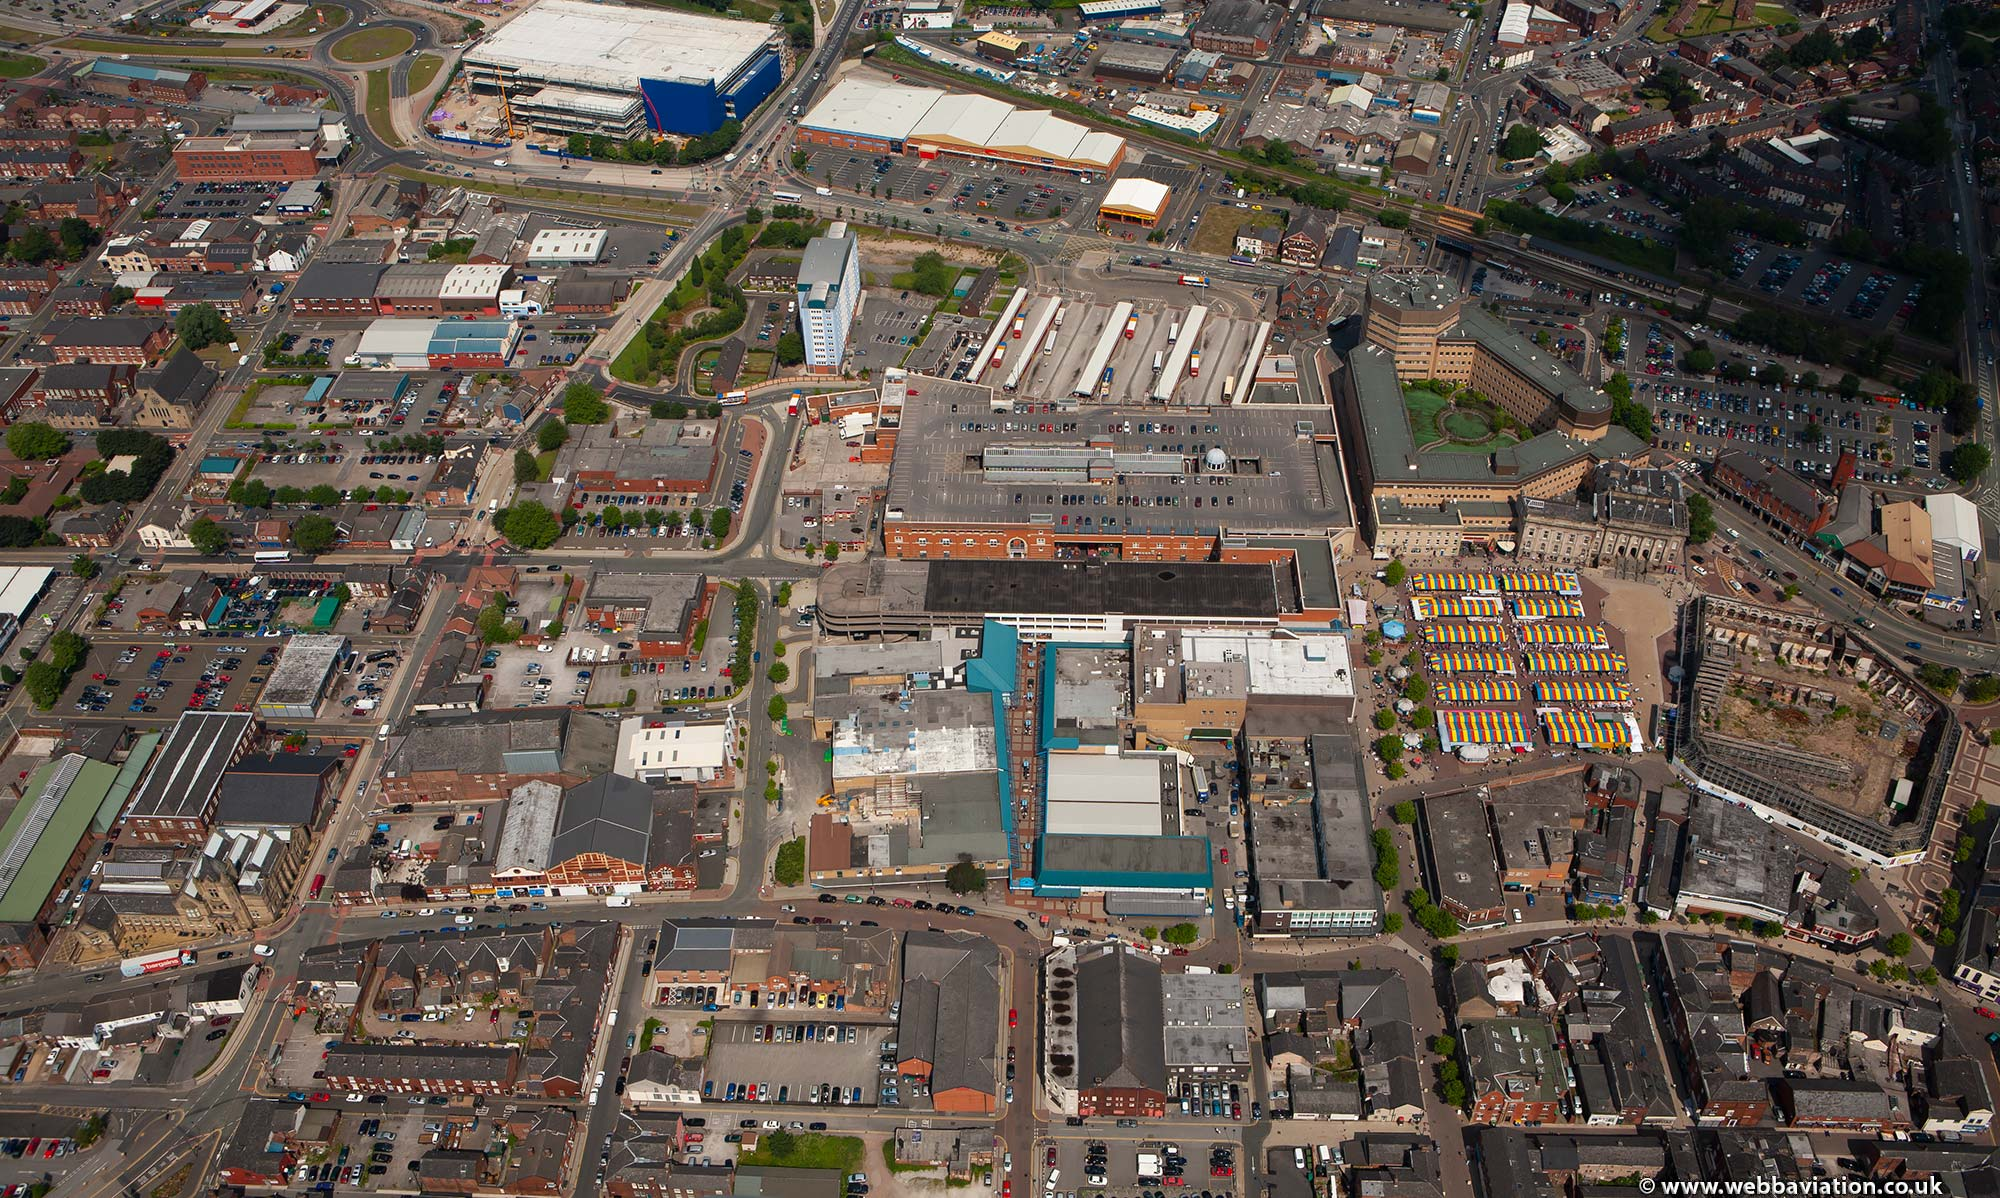 Ashton-under-Lyne Tameside, Greater Manchester  aerial photograph